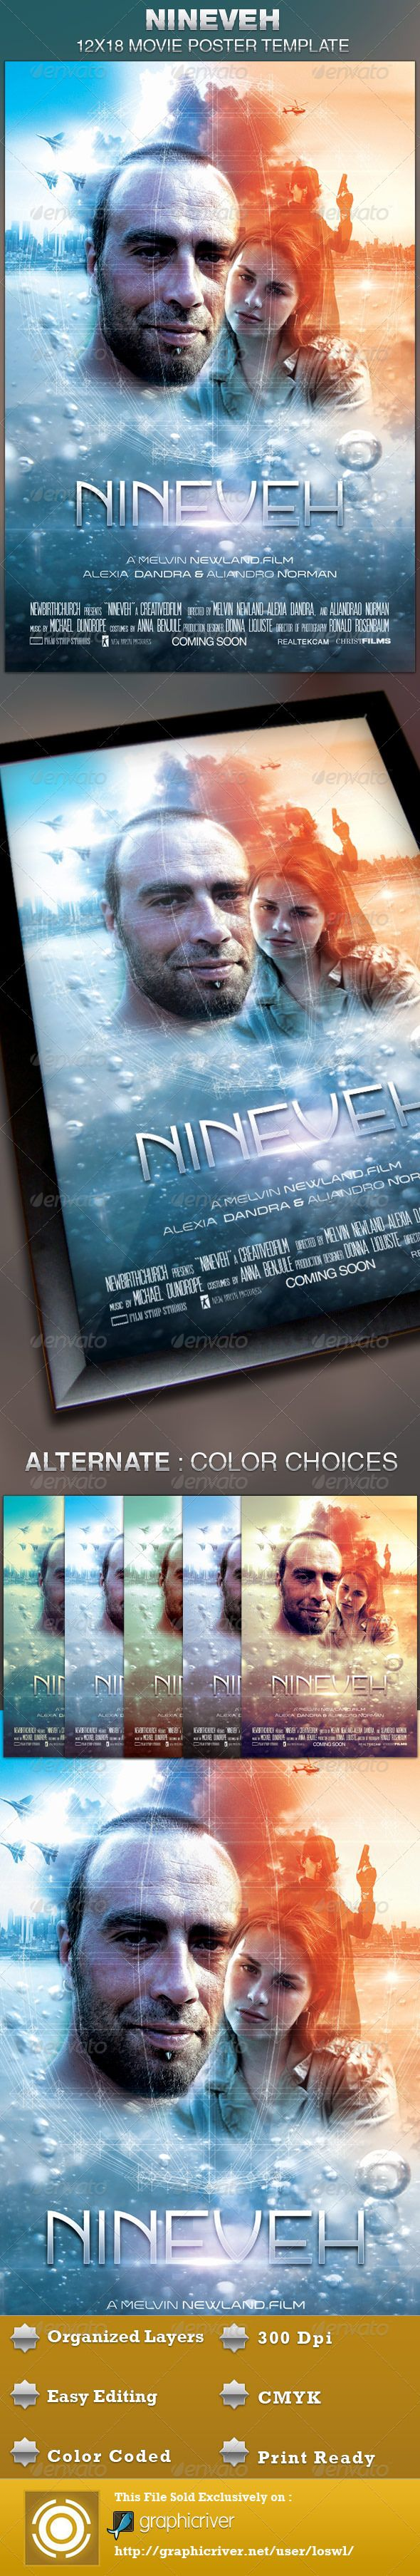 Nineveh Movie Poster Template — Photoshop PSD #film #design • Available here → https://graphicriver.net/item/nineveh-movie-poster-template/4544781?ref=pxcr